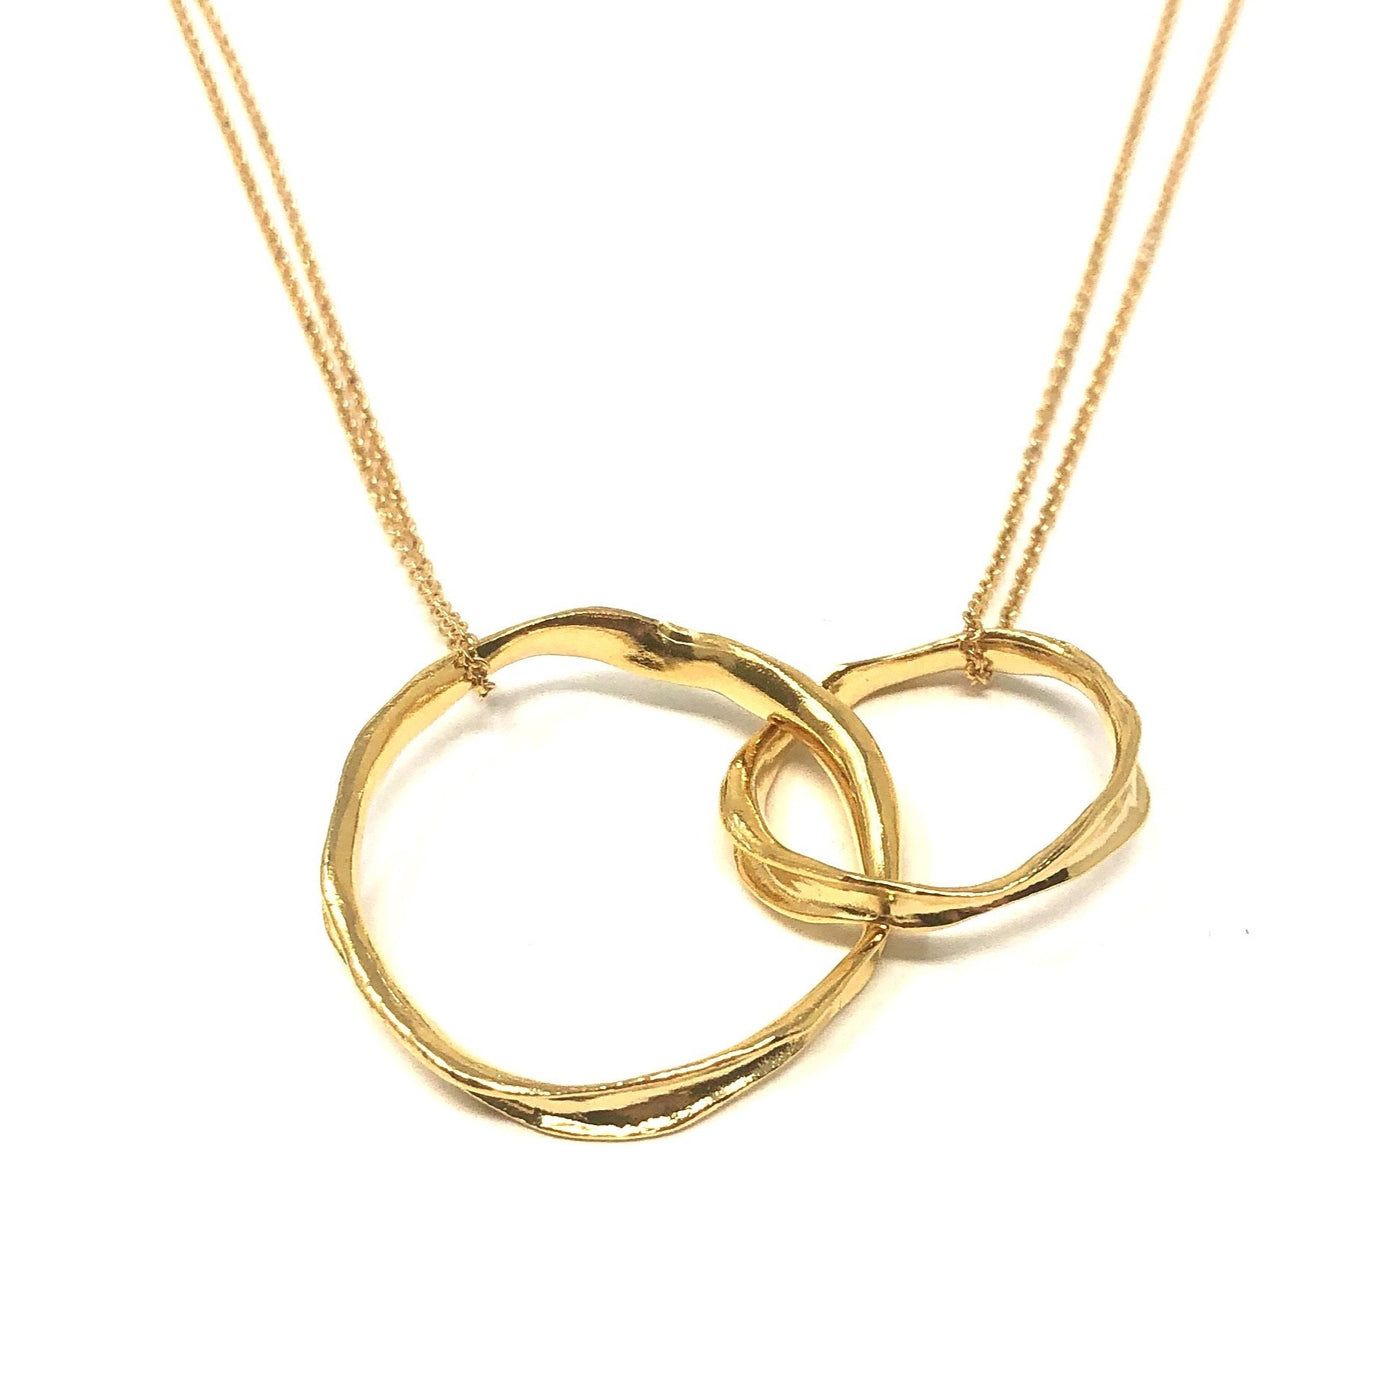 MSH NPOC06G GOLD DOUBLE CIRCLE NECKLACE